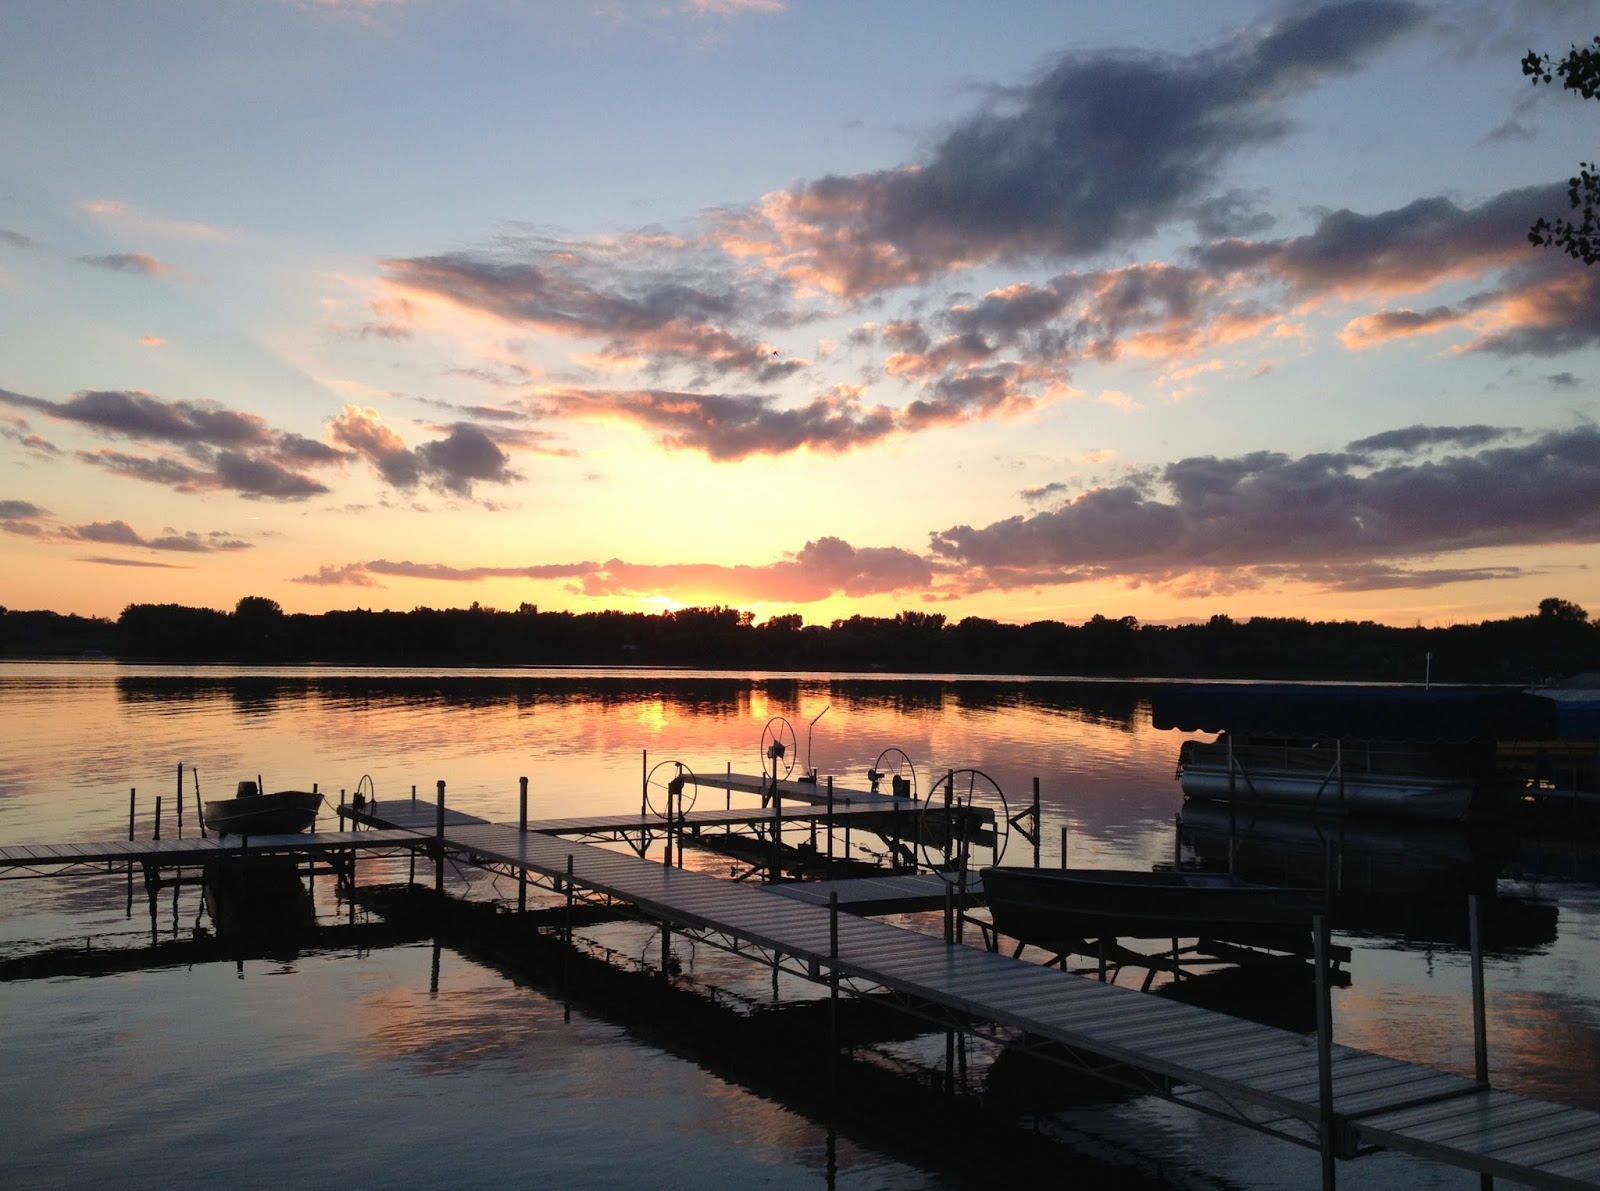 pelican lake Strand island is a 45 acre private island located on 11,000 acre pelican lake in orr, minnesota the 108 year old main cabin has 6 bedrooms, 2 baths, a stone fireplace and a huge porch.